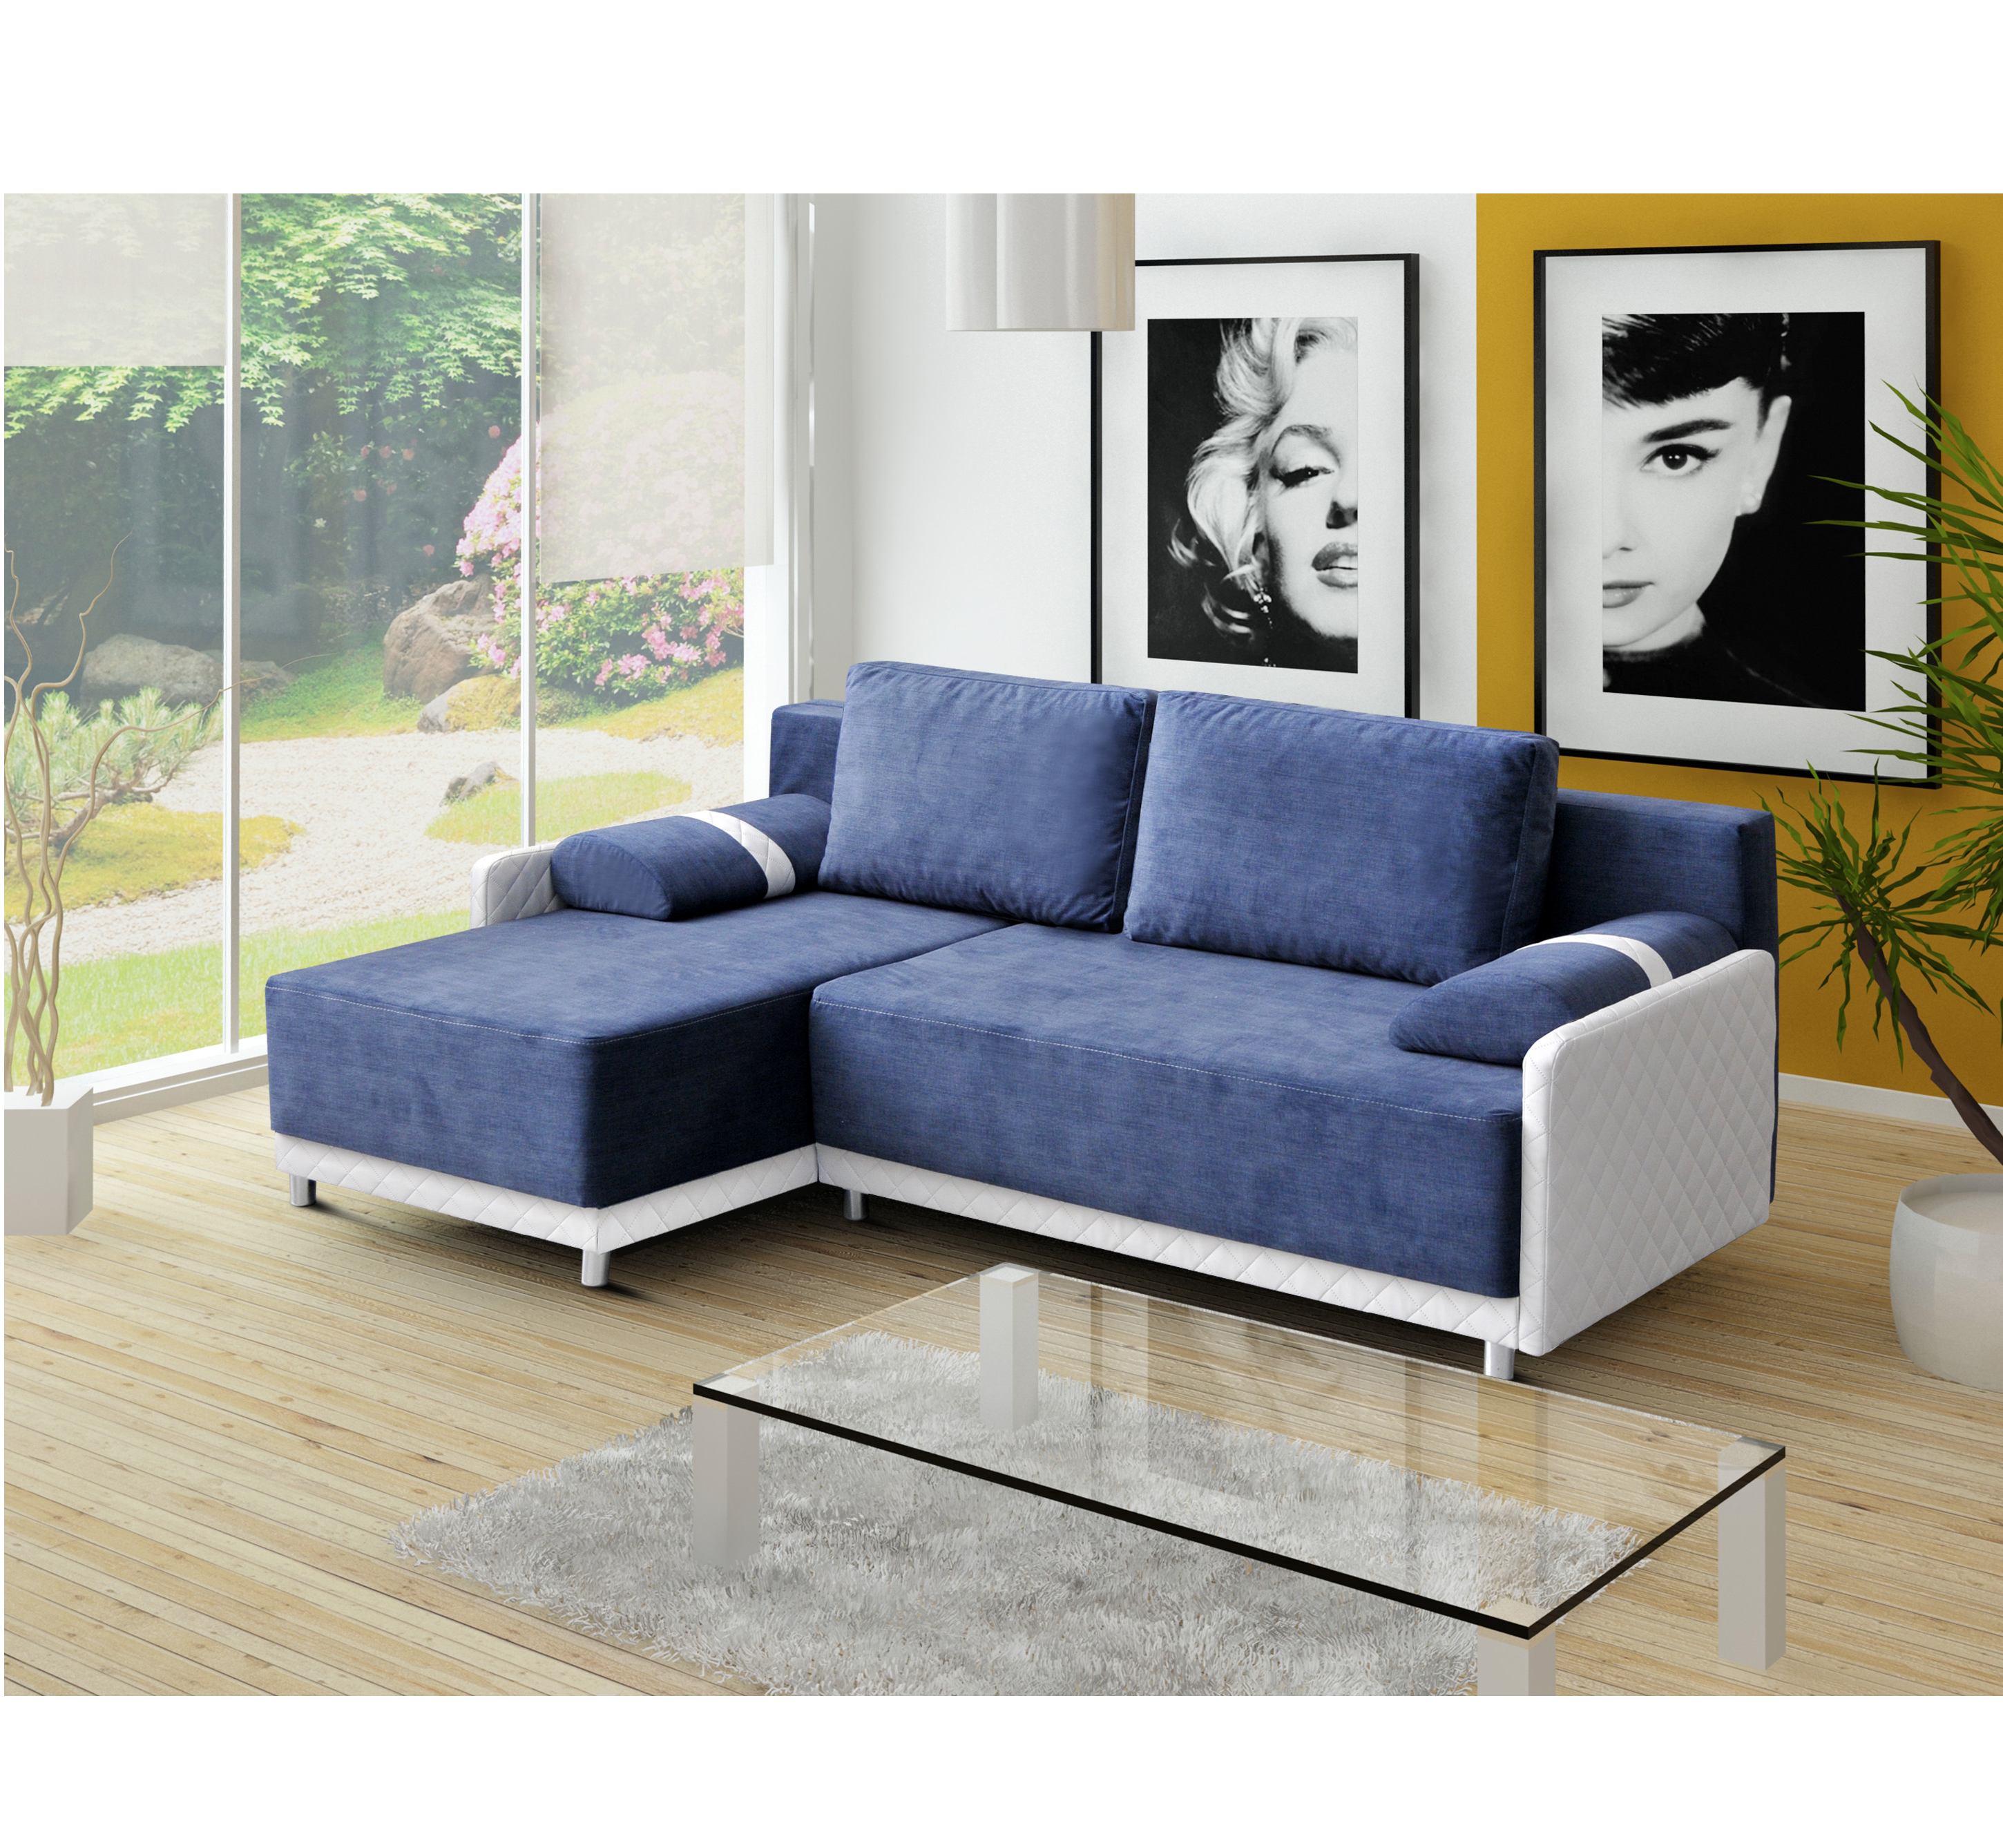 ecksofa eckcouch mit schlaffunktion und ottomane wohnlandschaft indiana blau ebay. Black Bedroom Furniture Sets. Home Design Ideas